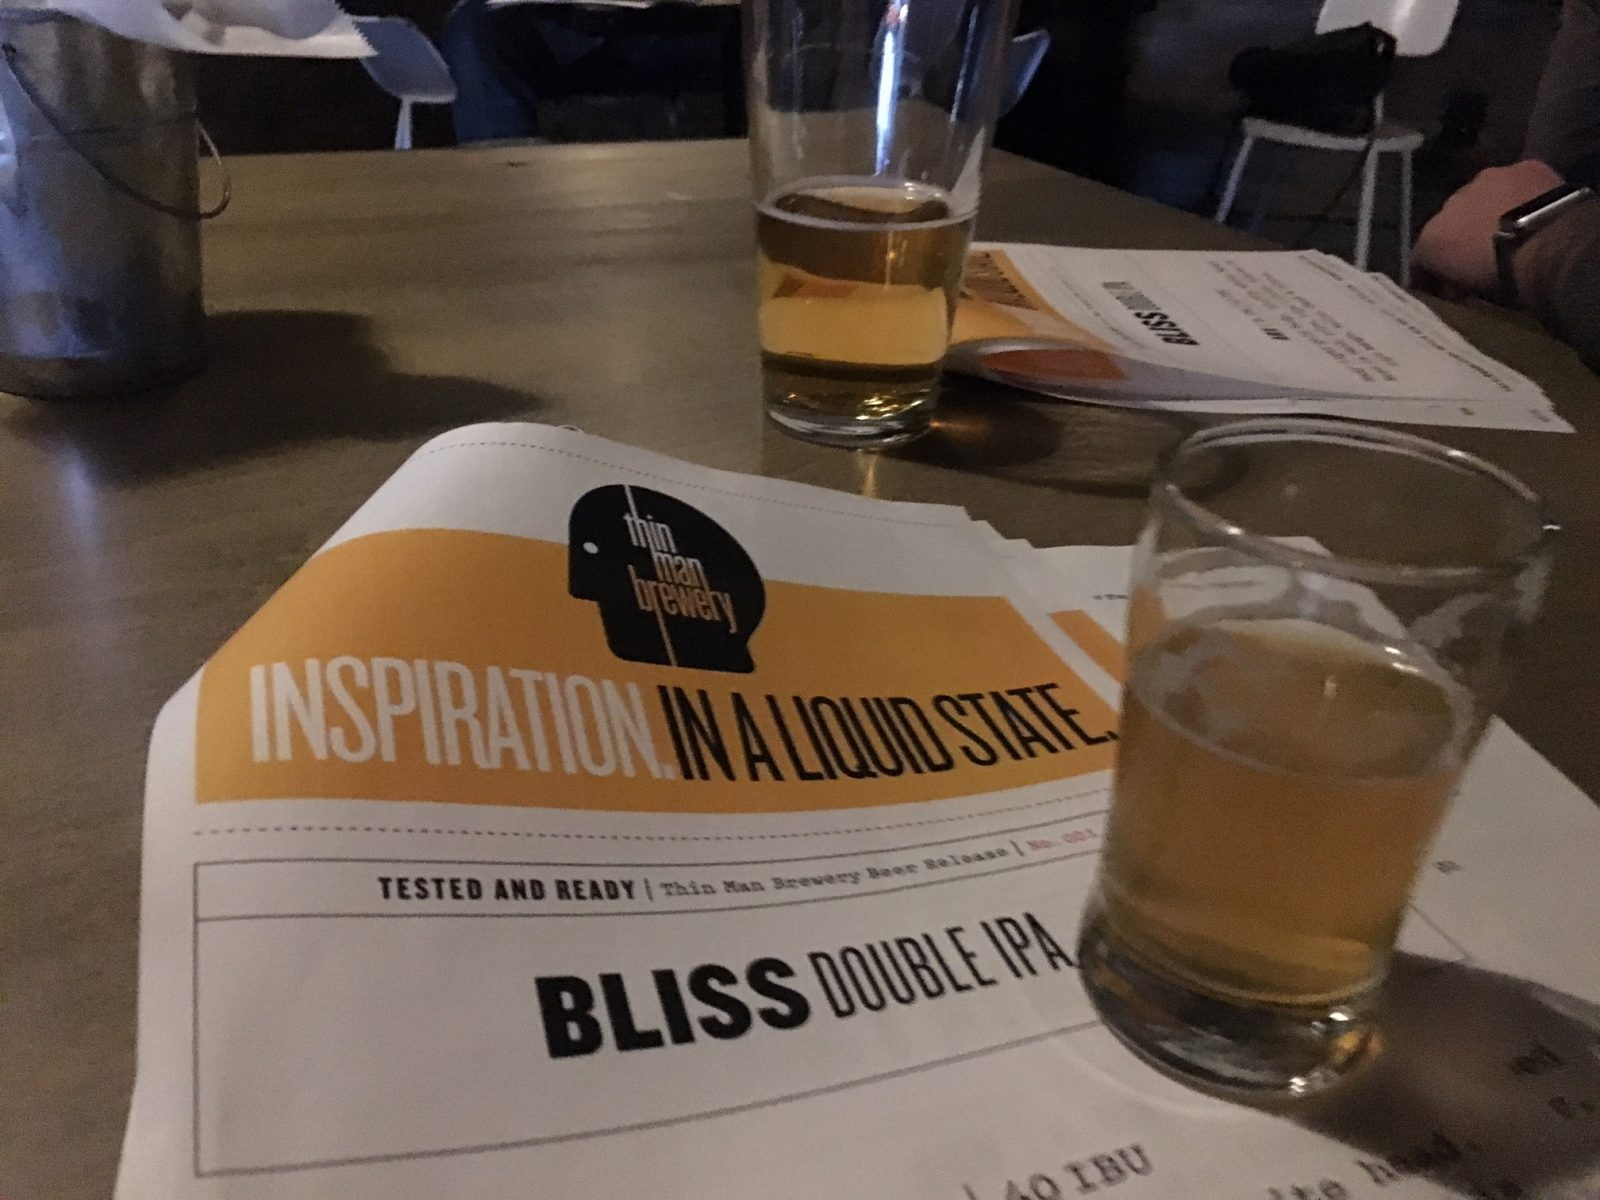 Thin Man Brewery is welcoming back Bliss, a double IPA.